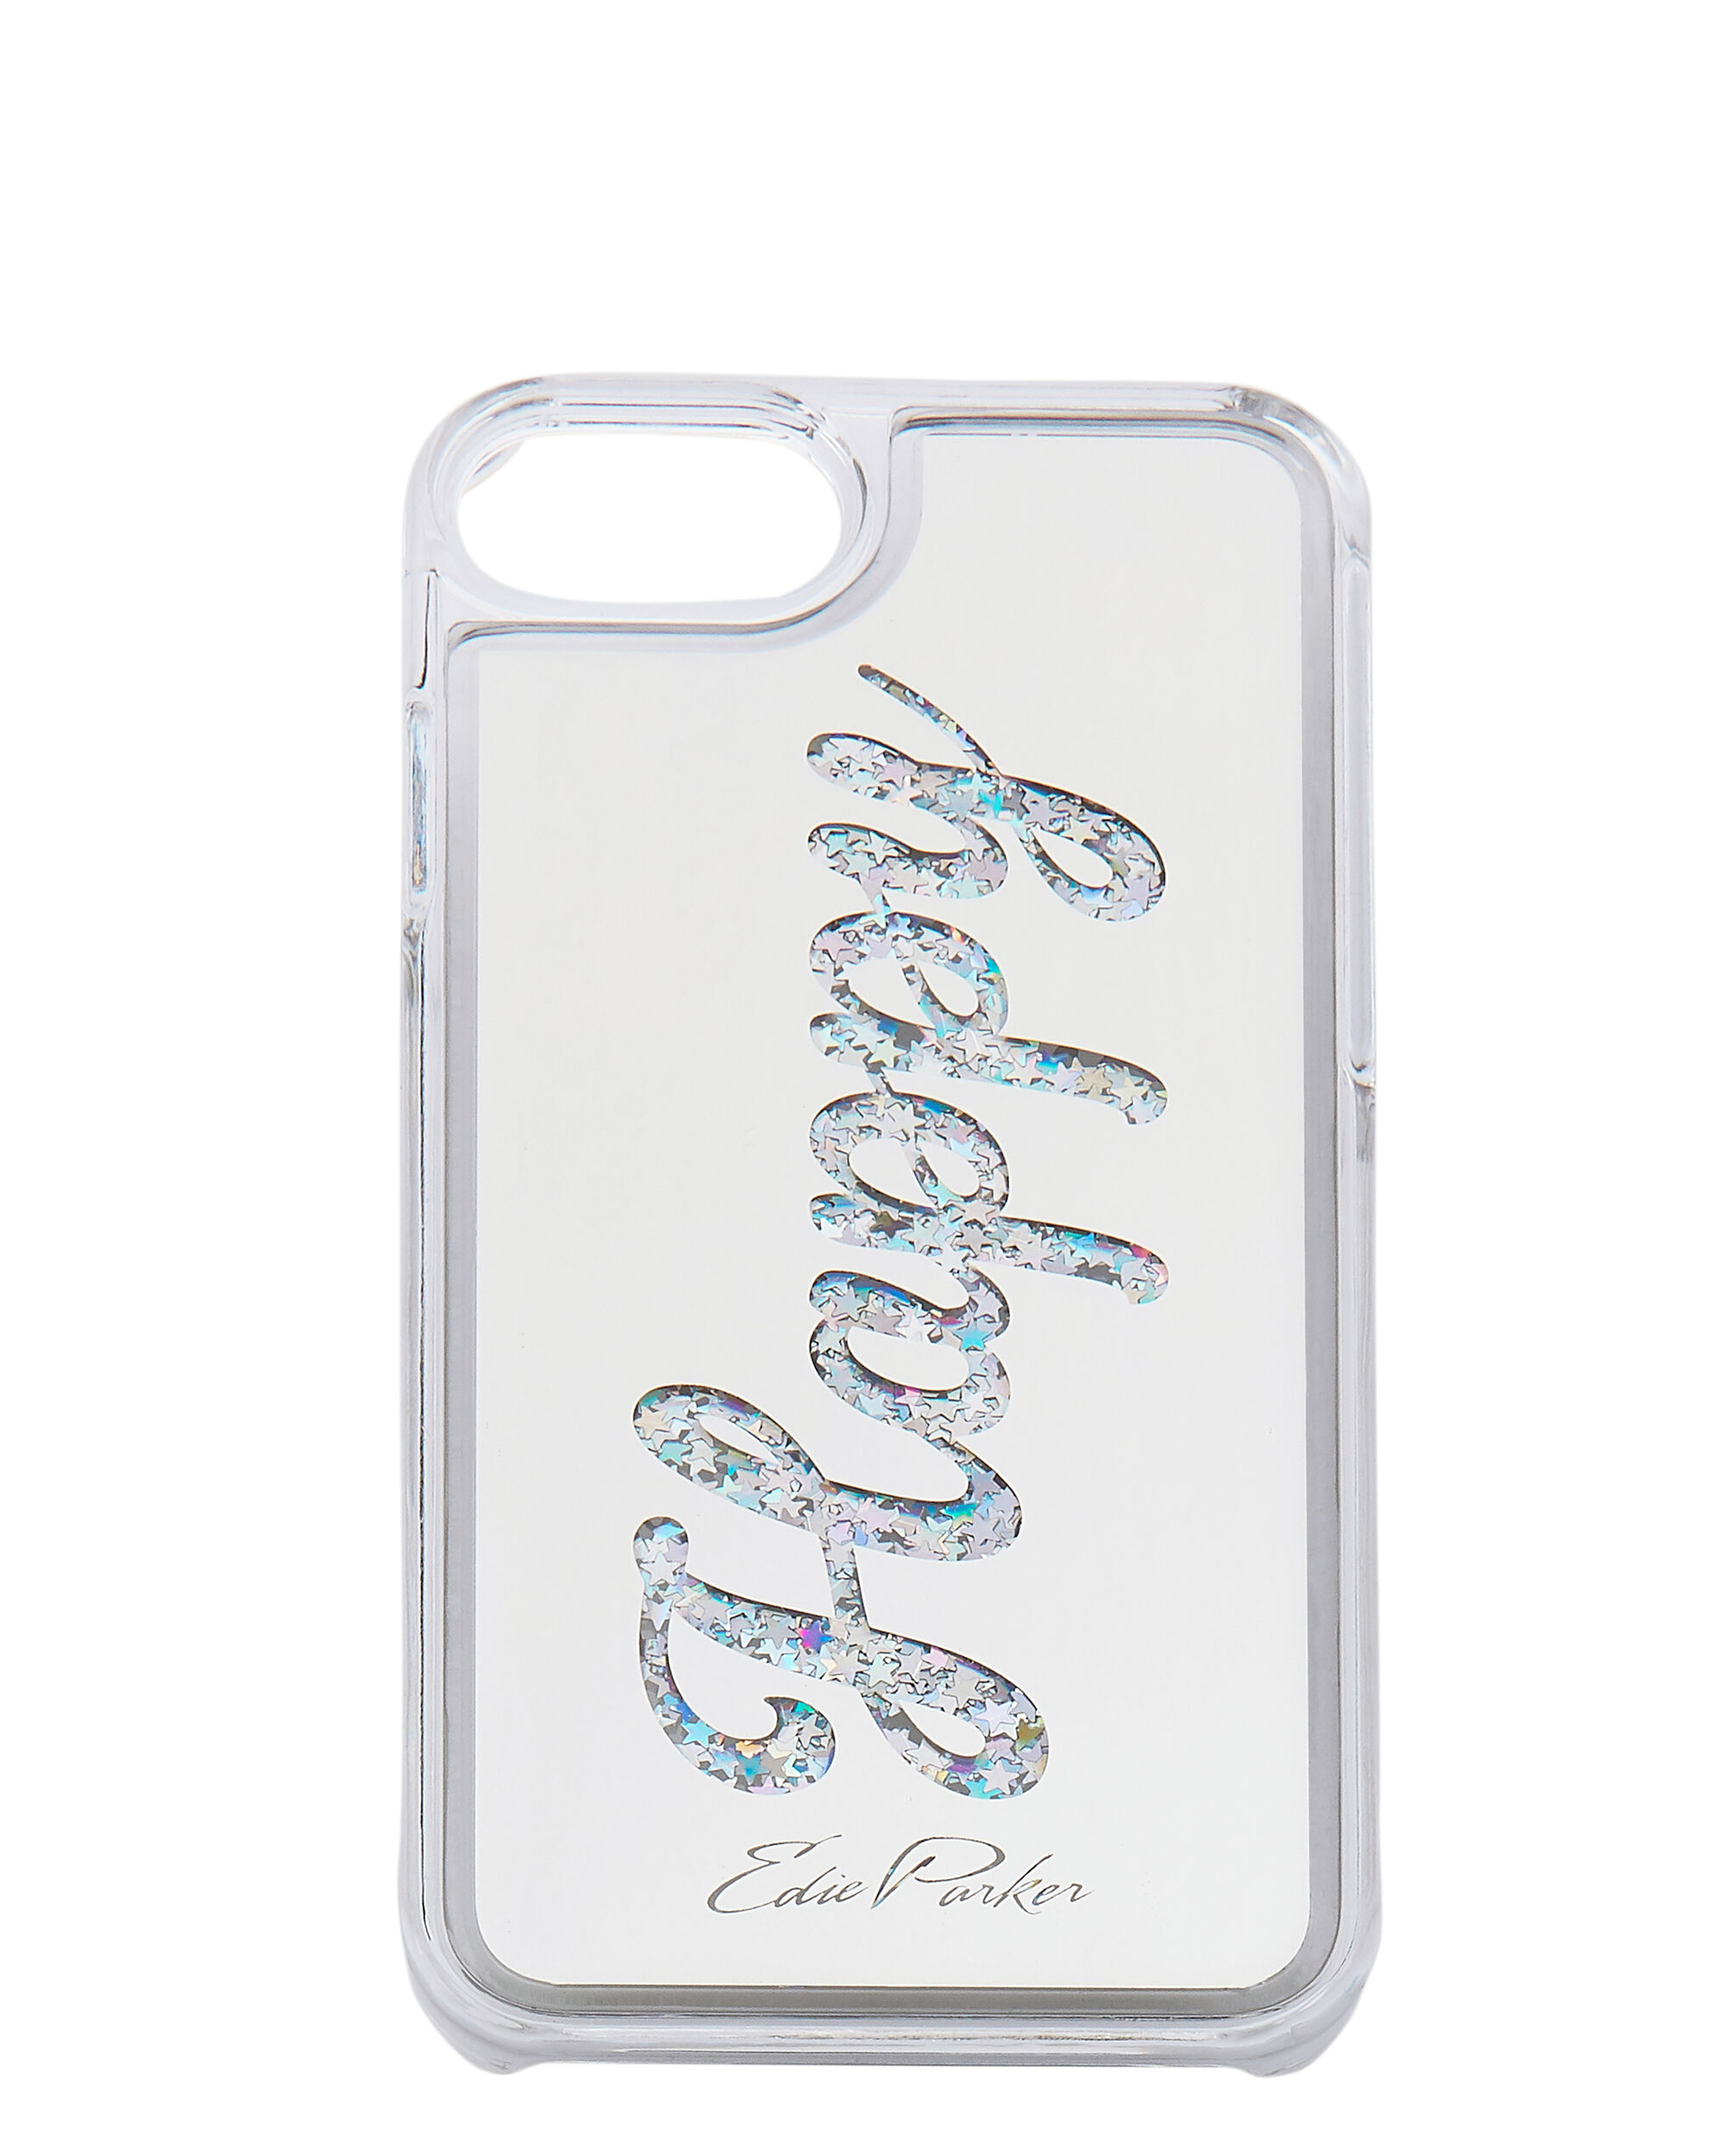 Silver Floating Happy iPhone 6 or 7 Case, METALLIC, hi-res